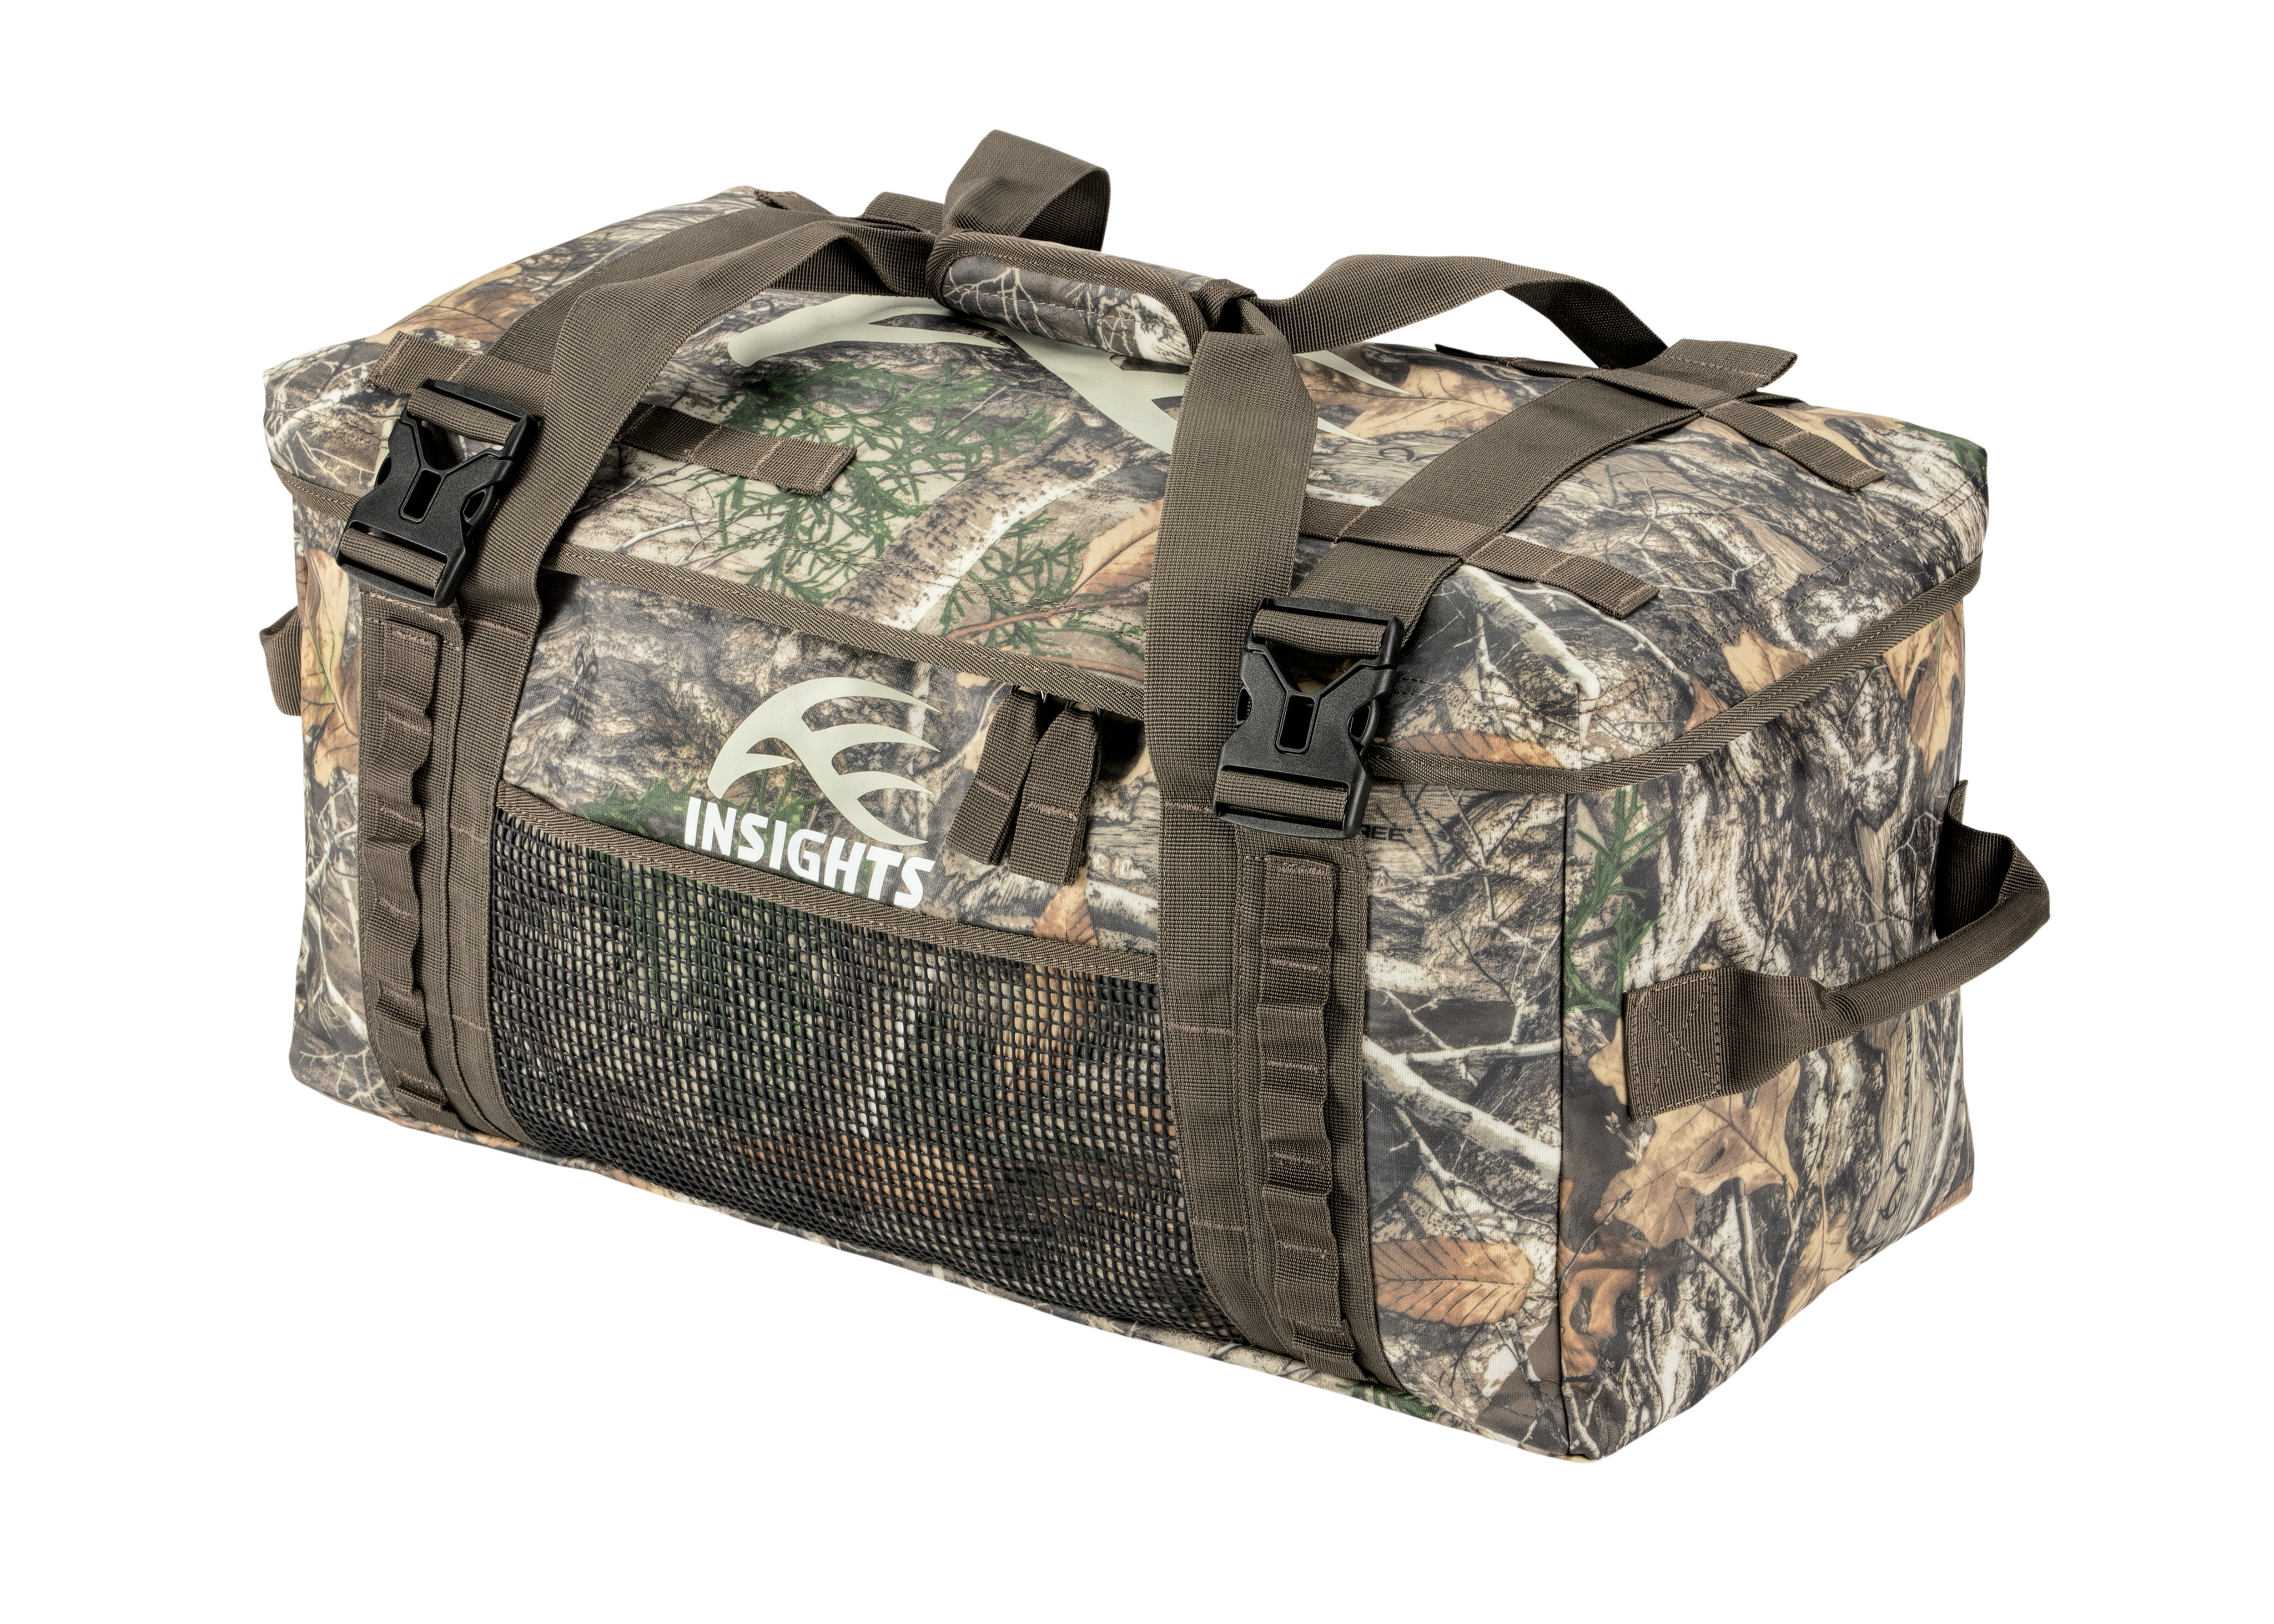 Insights Hunting The Traveler XL Gear Bag